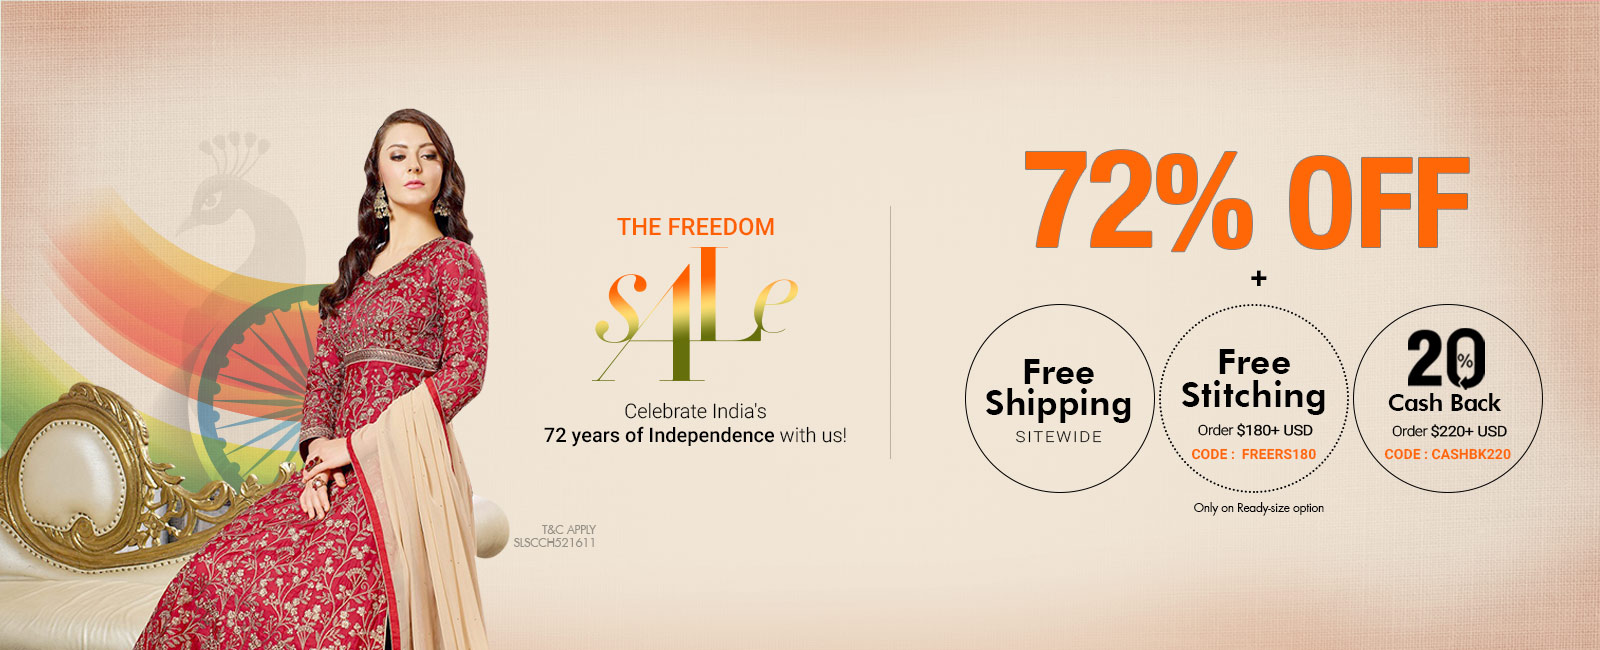 72% off + Free Shipping + Free Stitching